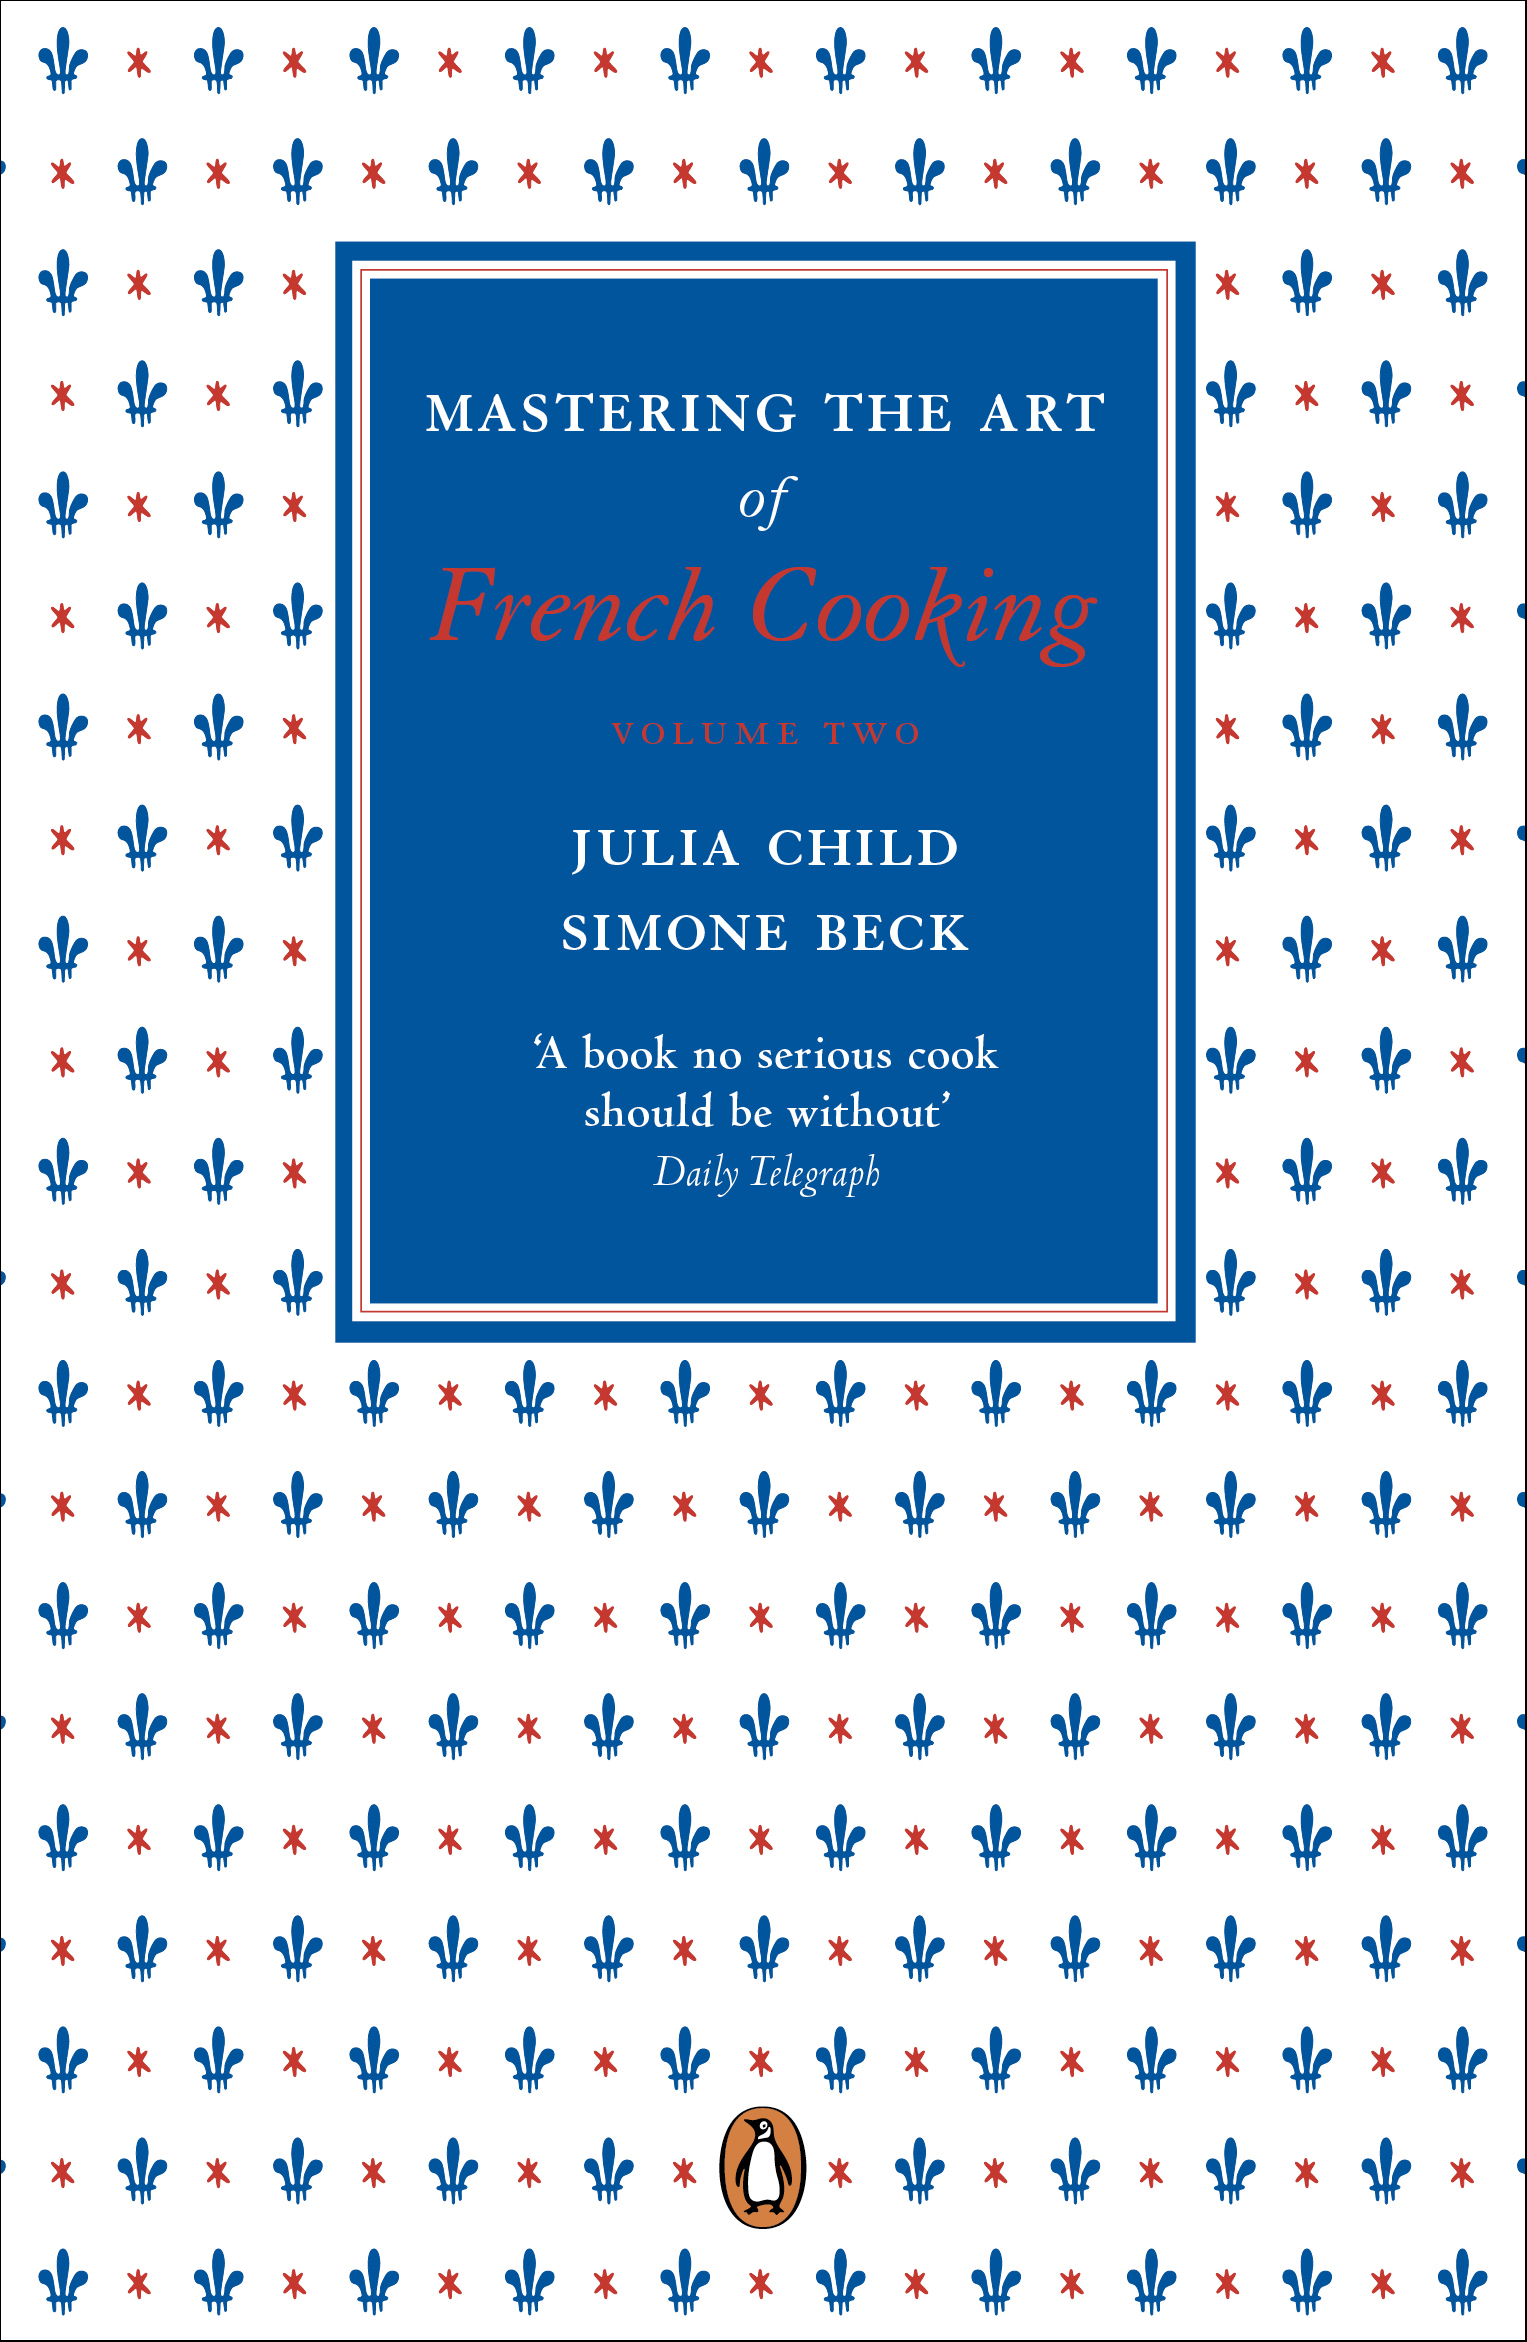 Mastering the Art of French Cooking, Vol.2 by Child Julia & Beck Simone, ISBN: 9780241956472